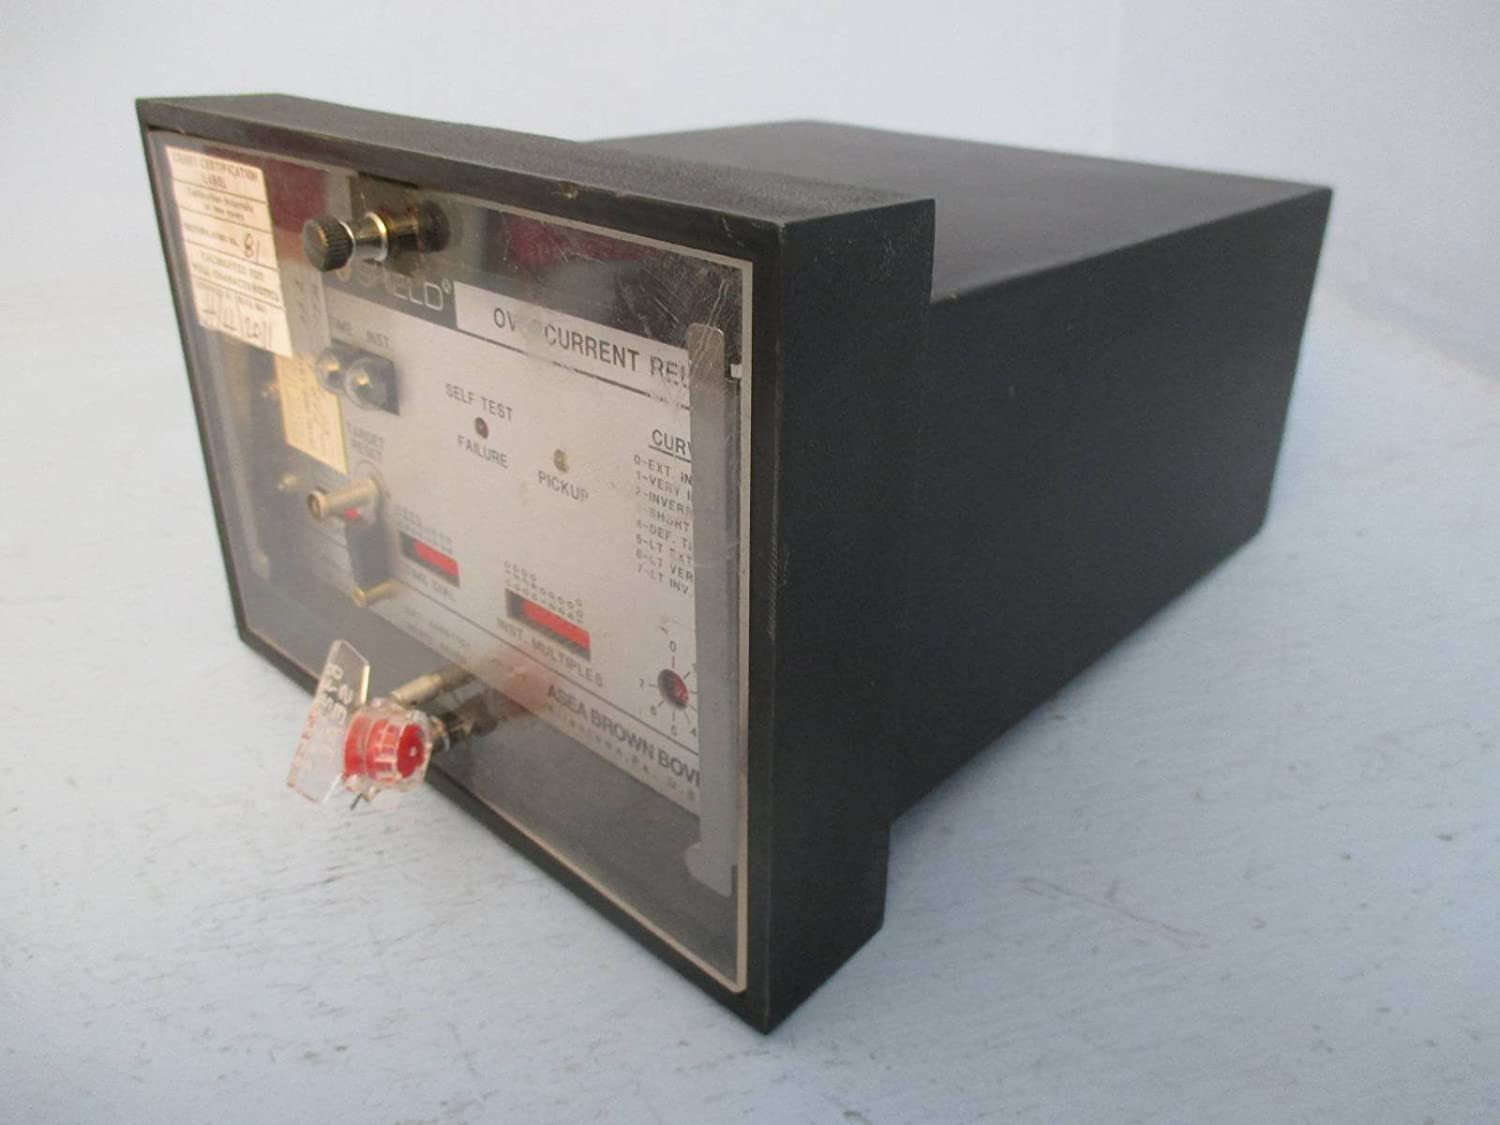 Abb 446s1101 Circuit Shield Overcurrent Relay Asea Brown Boveri Current Monitoring Industrial Scientific